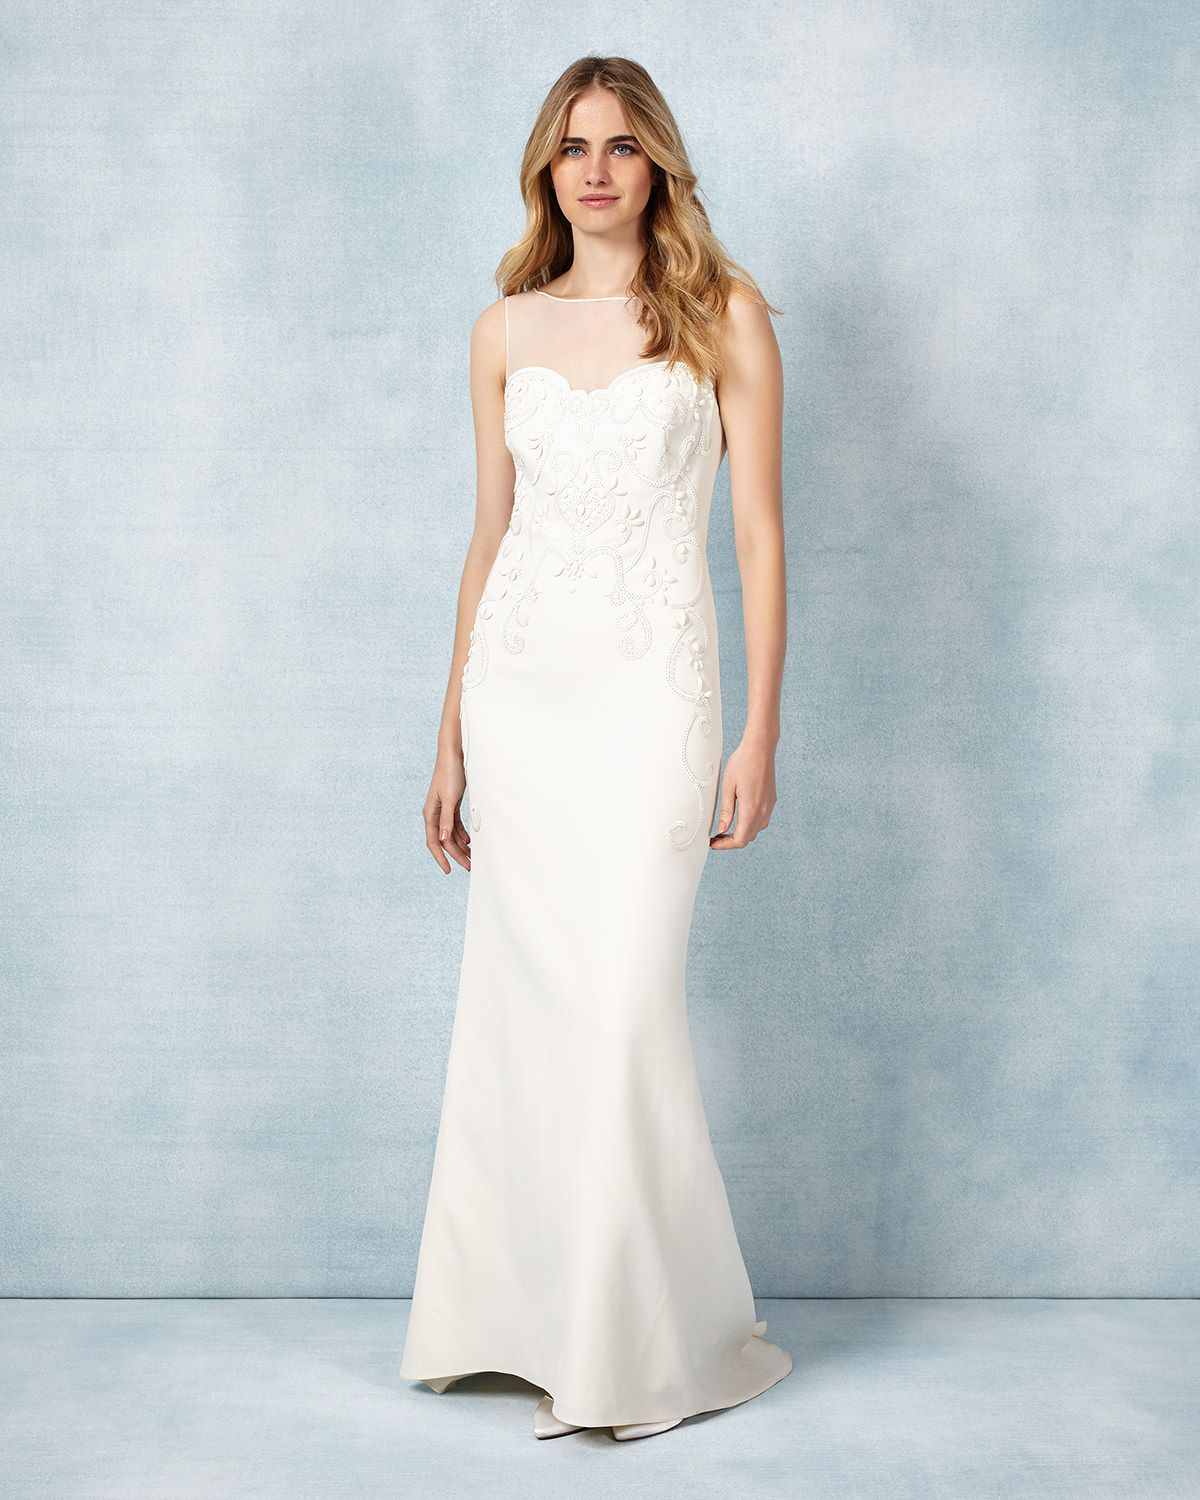 Old Fashioned High Street Shops That Sell Wedding Dresses Motif ...